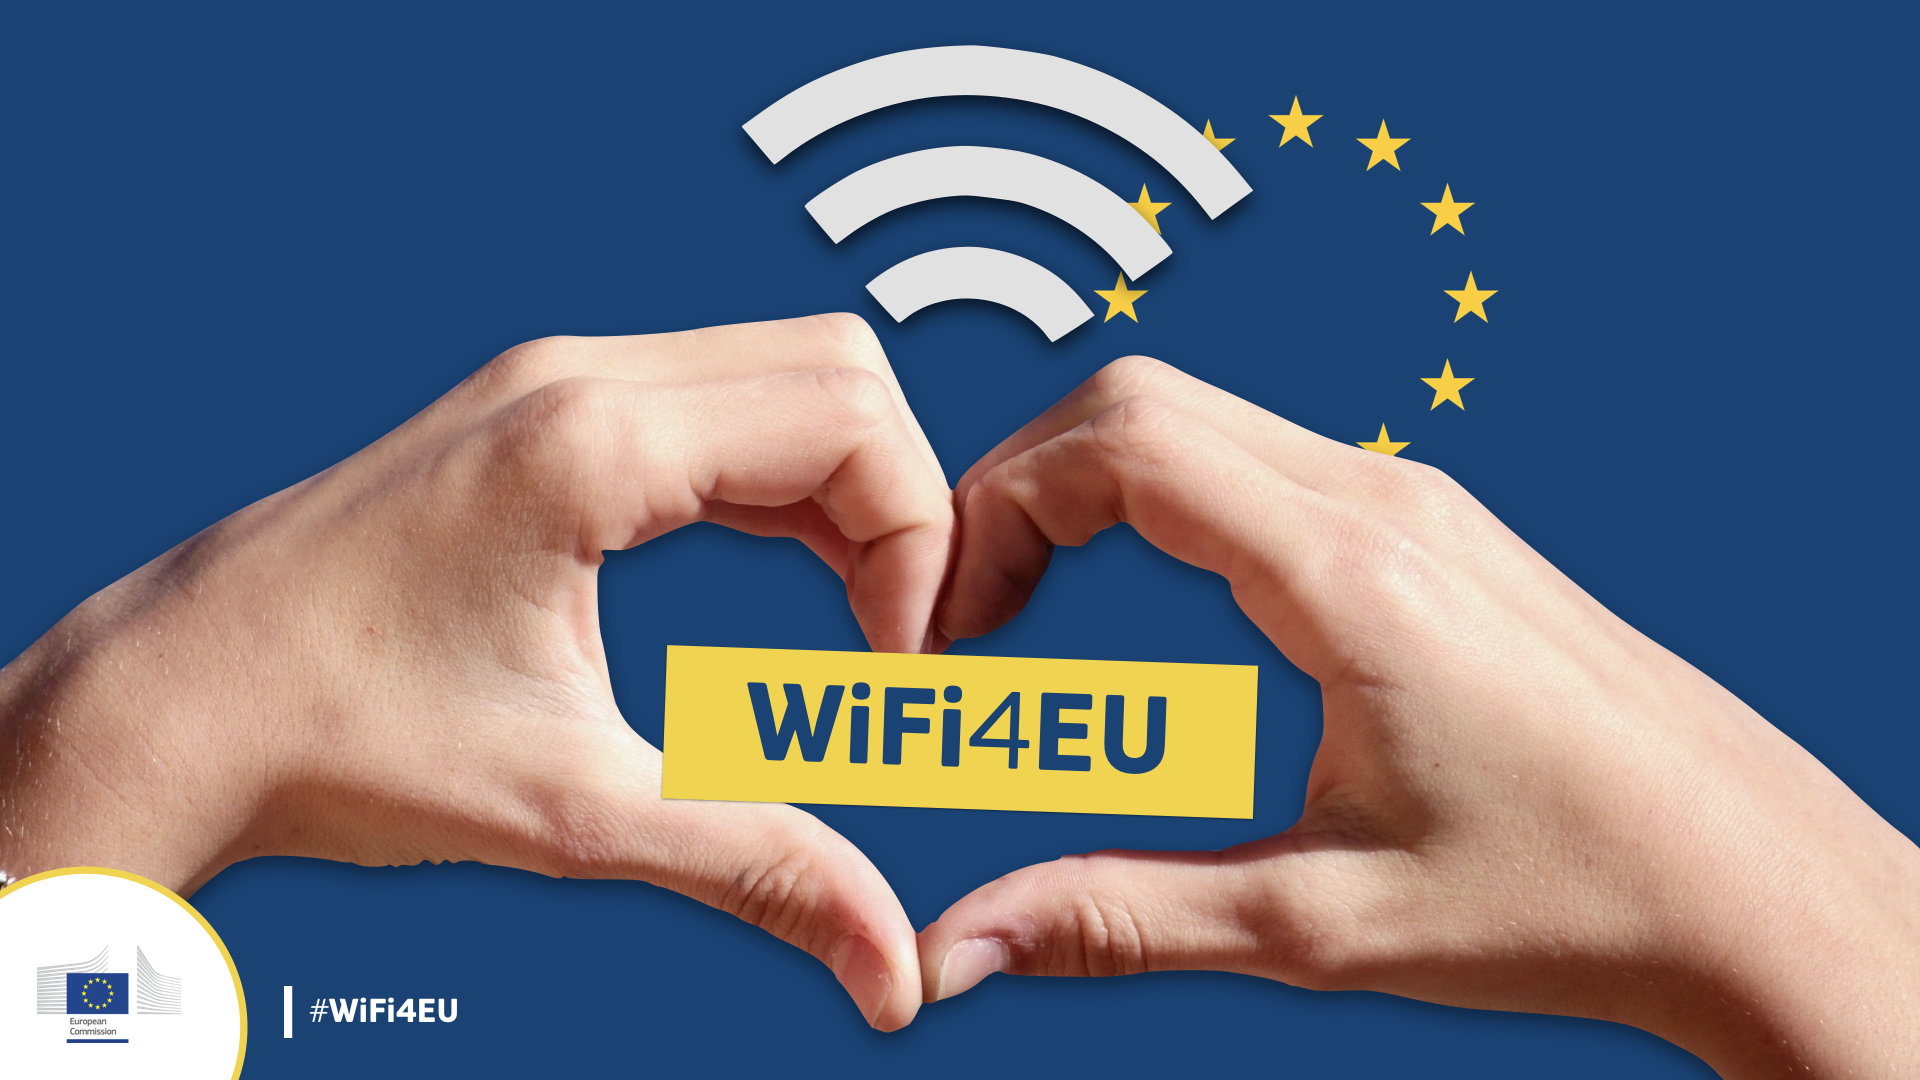 WiFi4EU General fb tw.002